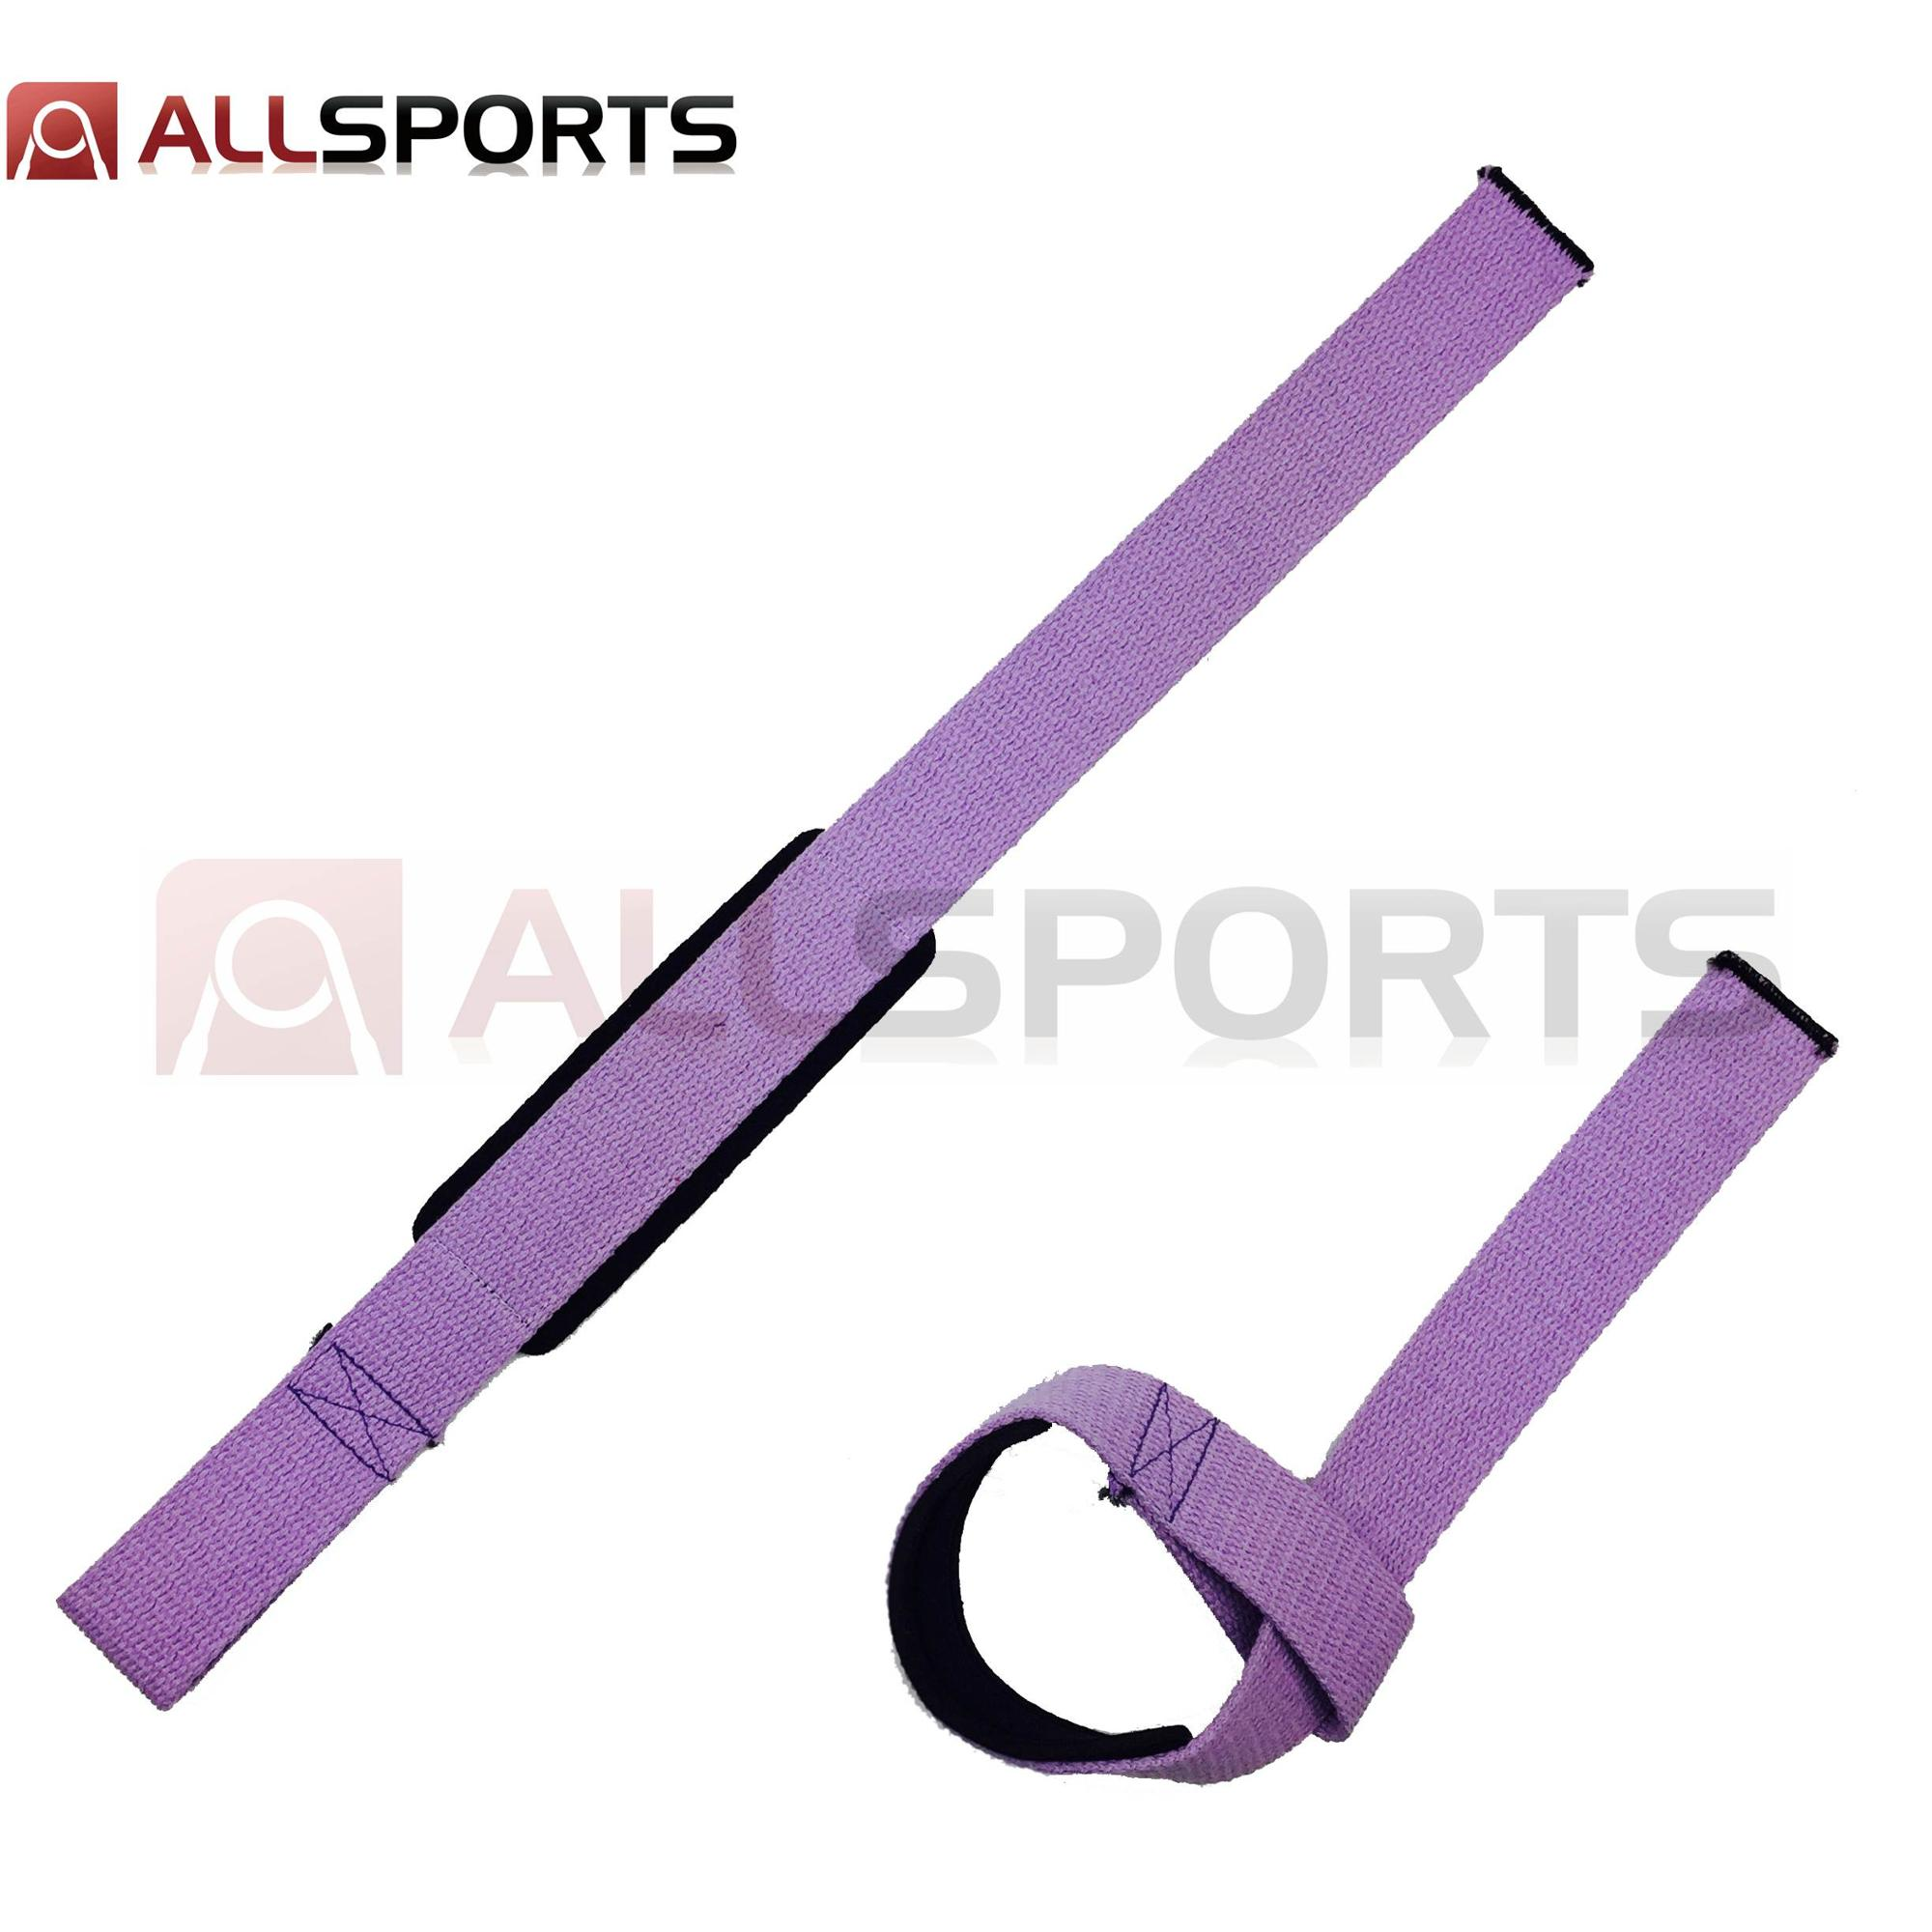 Padded Cotton Weight Lifting Strap with neoprene padding for Strength Training